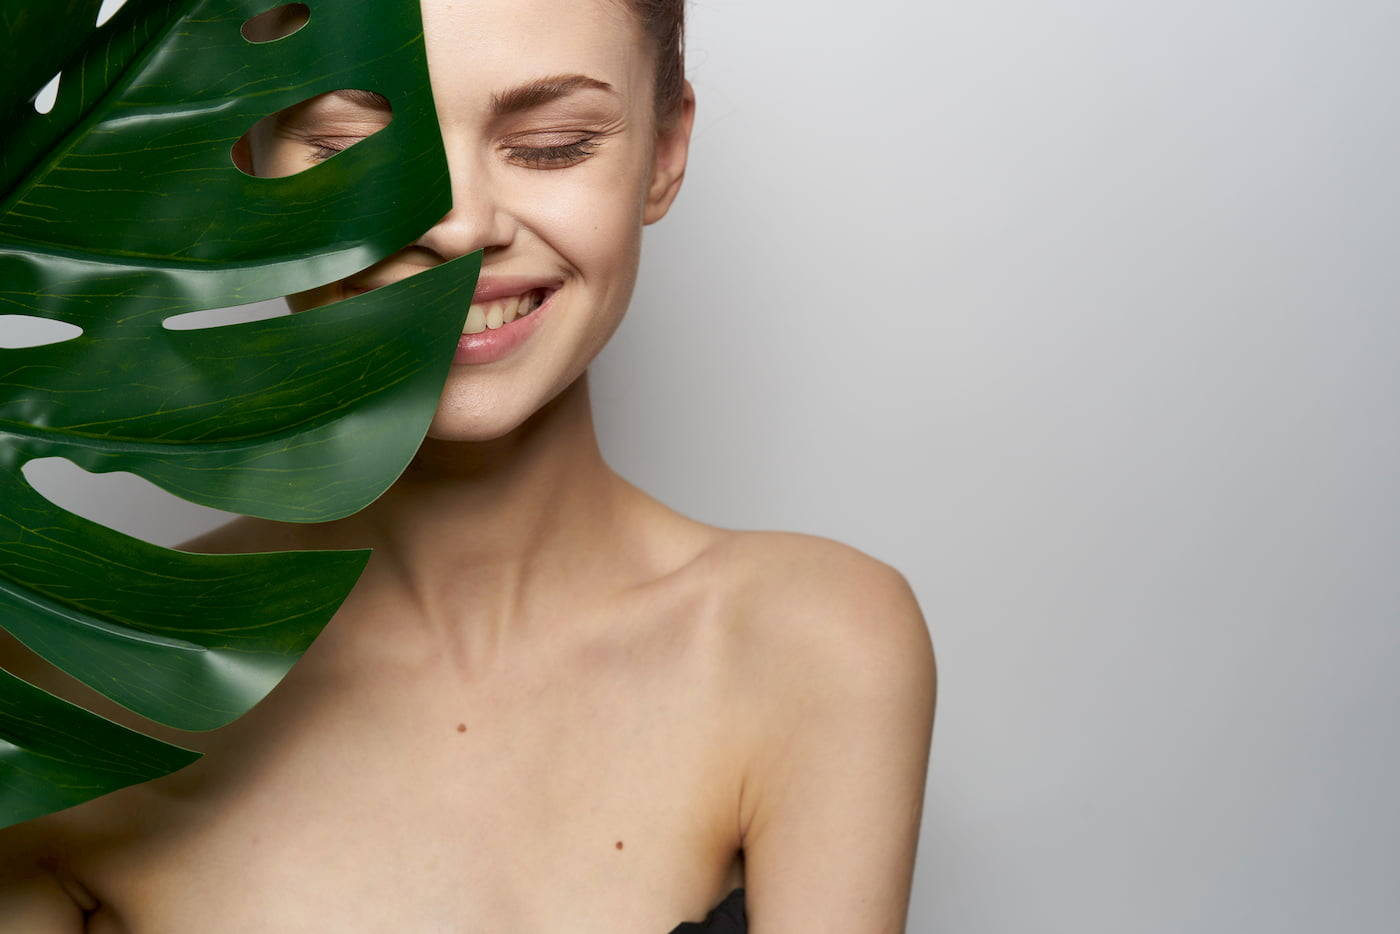 Four secrets to get fresh, glowing skin naturally